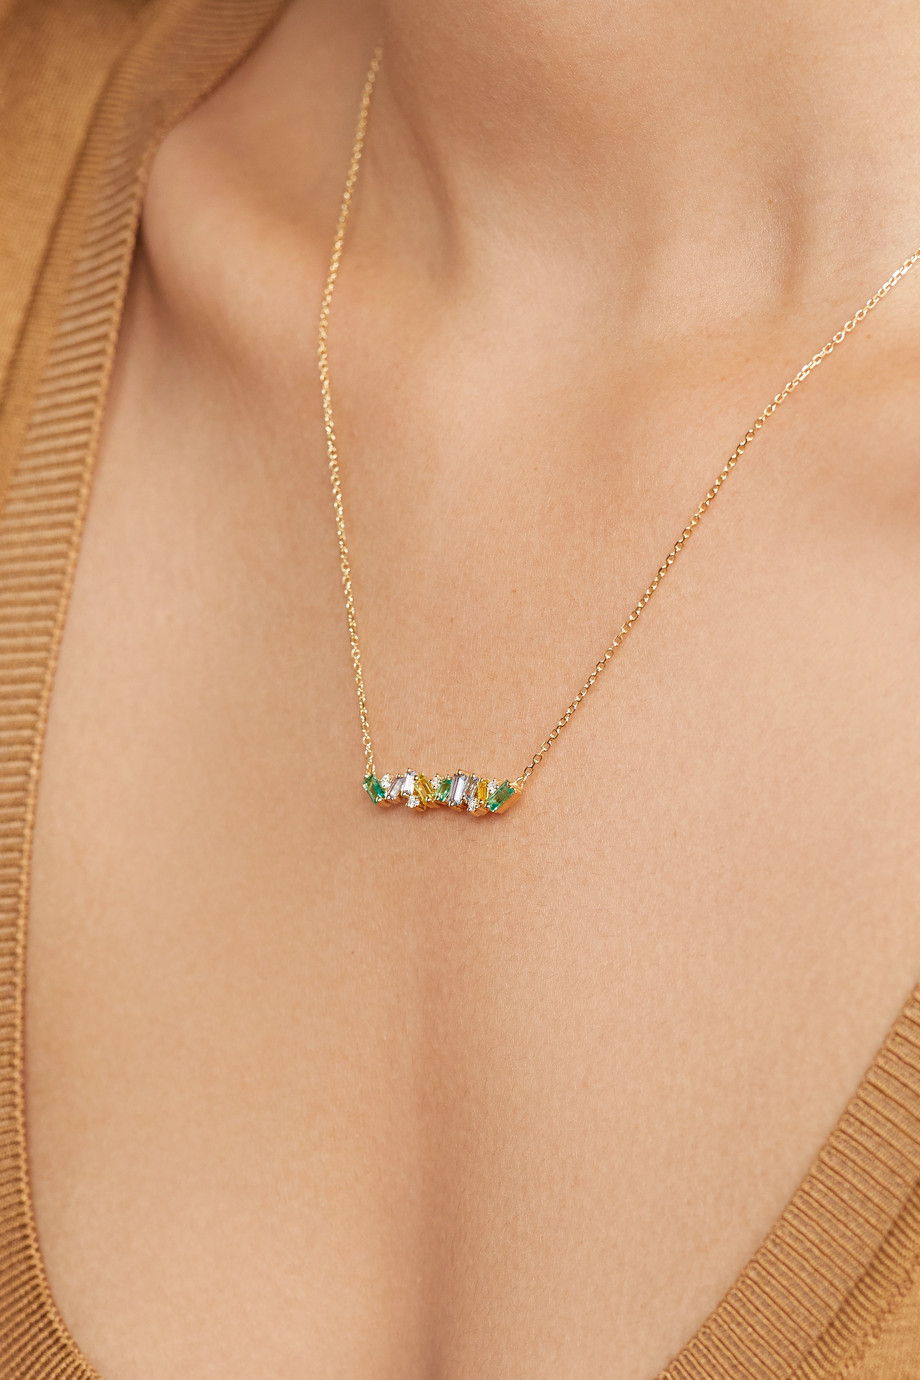 Suzanne Kalan 18-karat gold multi-stone necklace